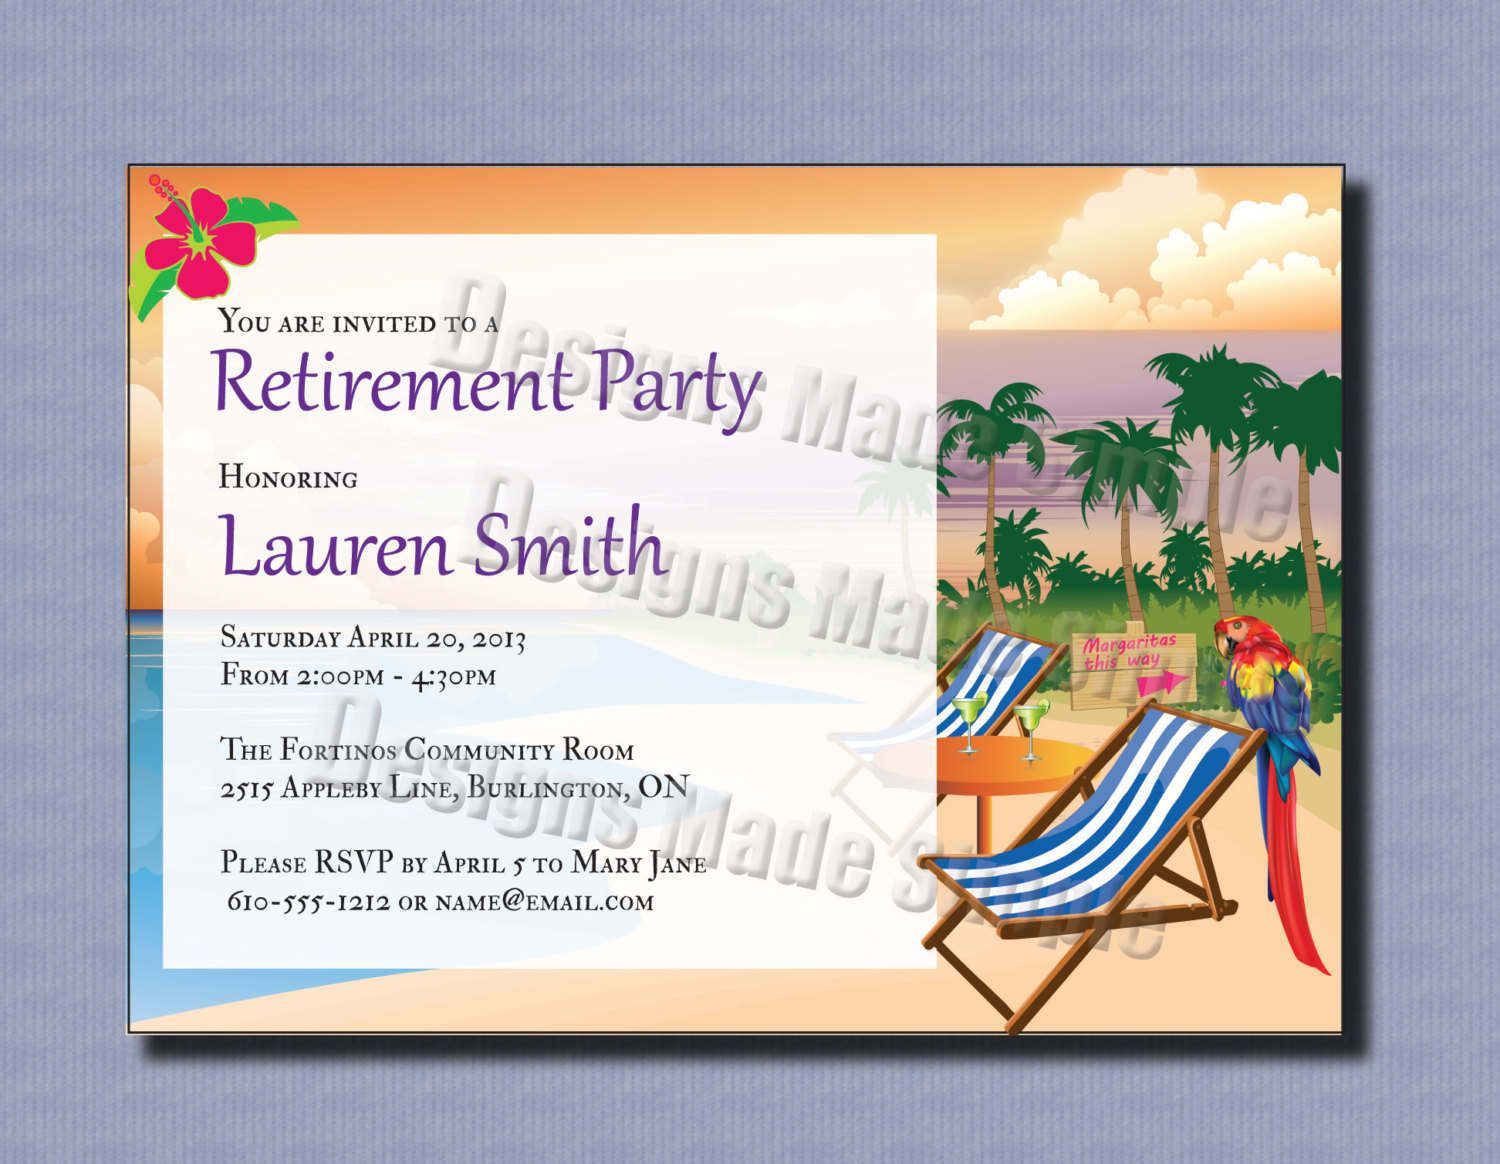 000 Outstanding Free Retirement Invitation Template High Definition  Templates Microsoft Word Party FlyerFull